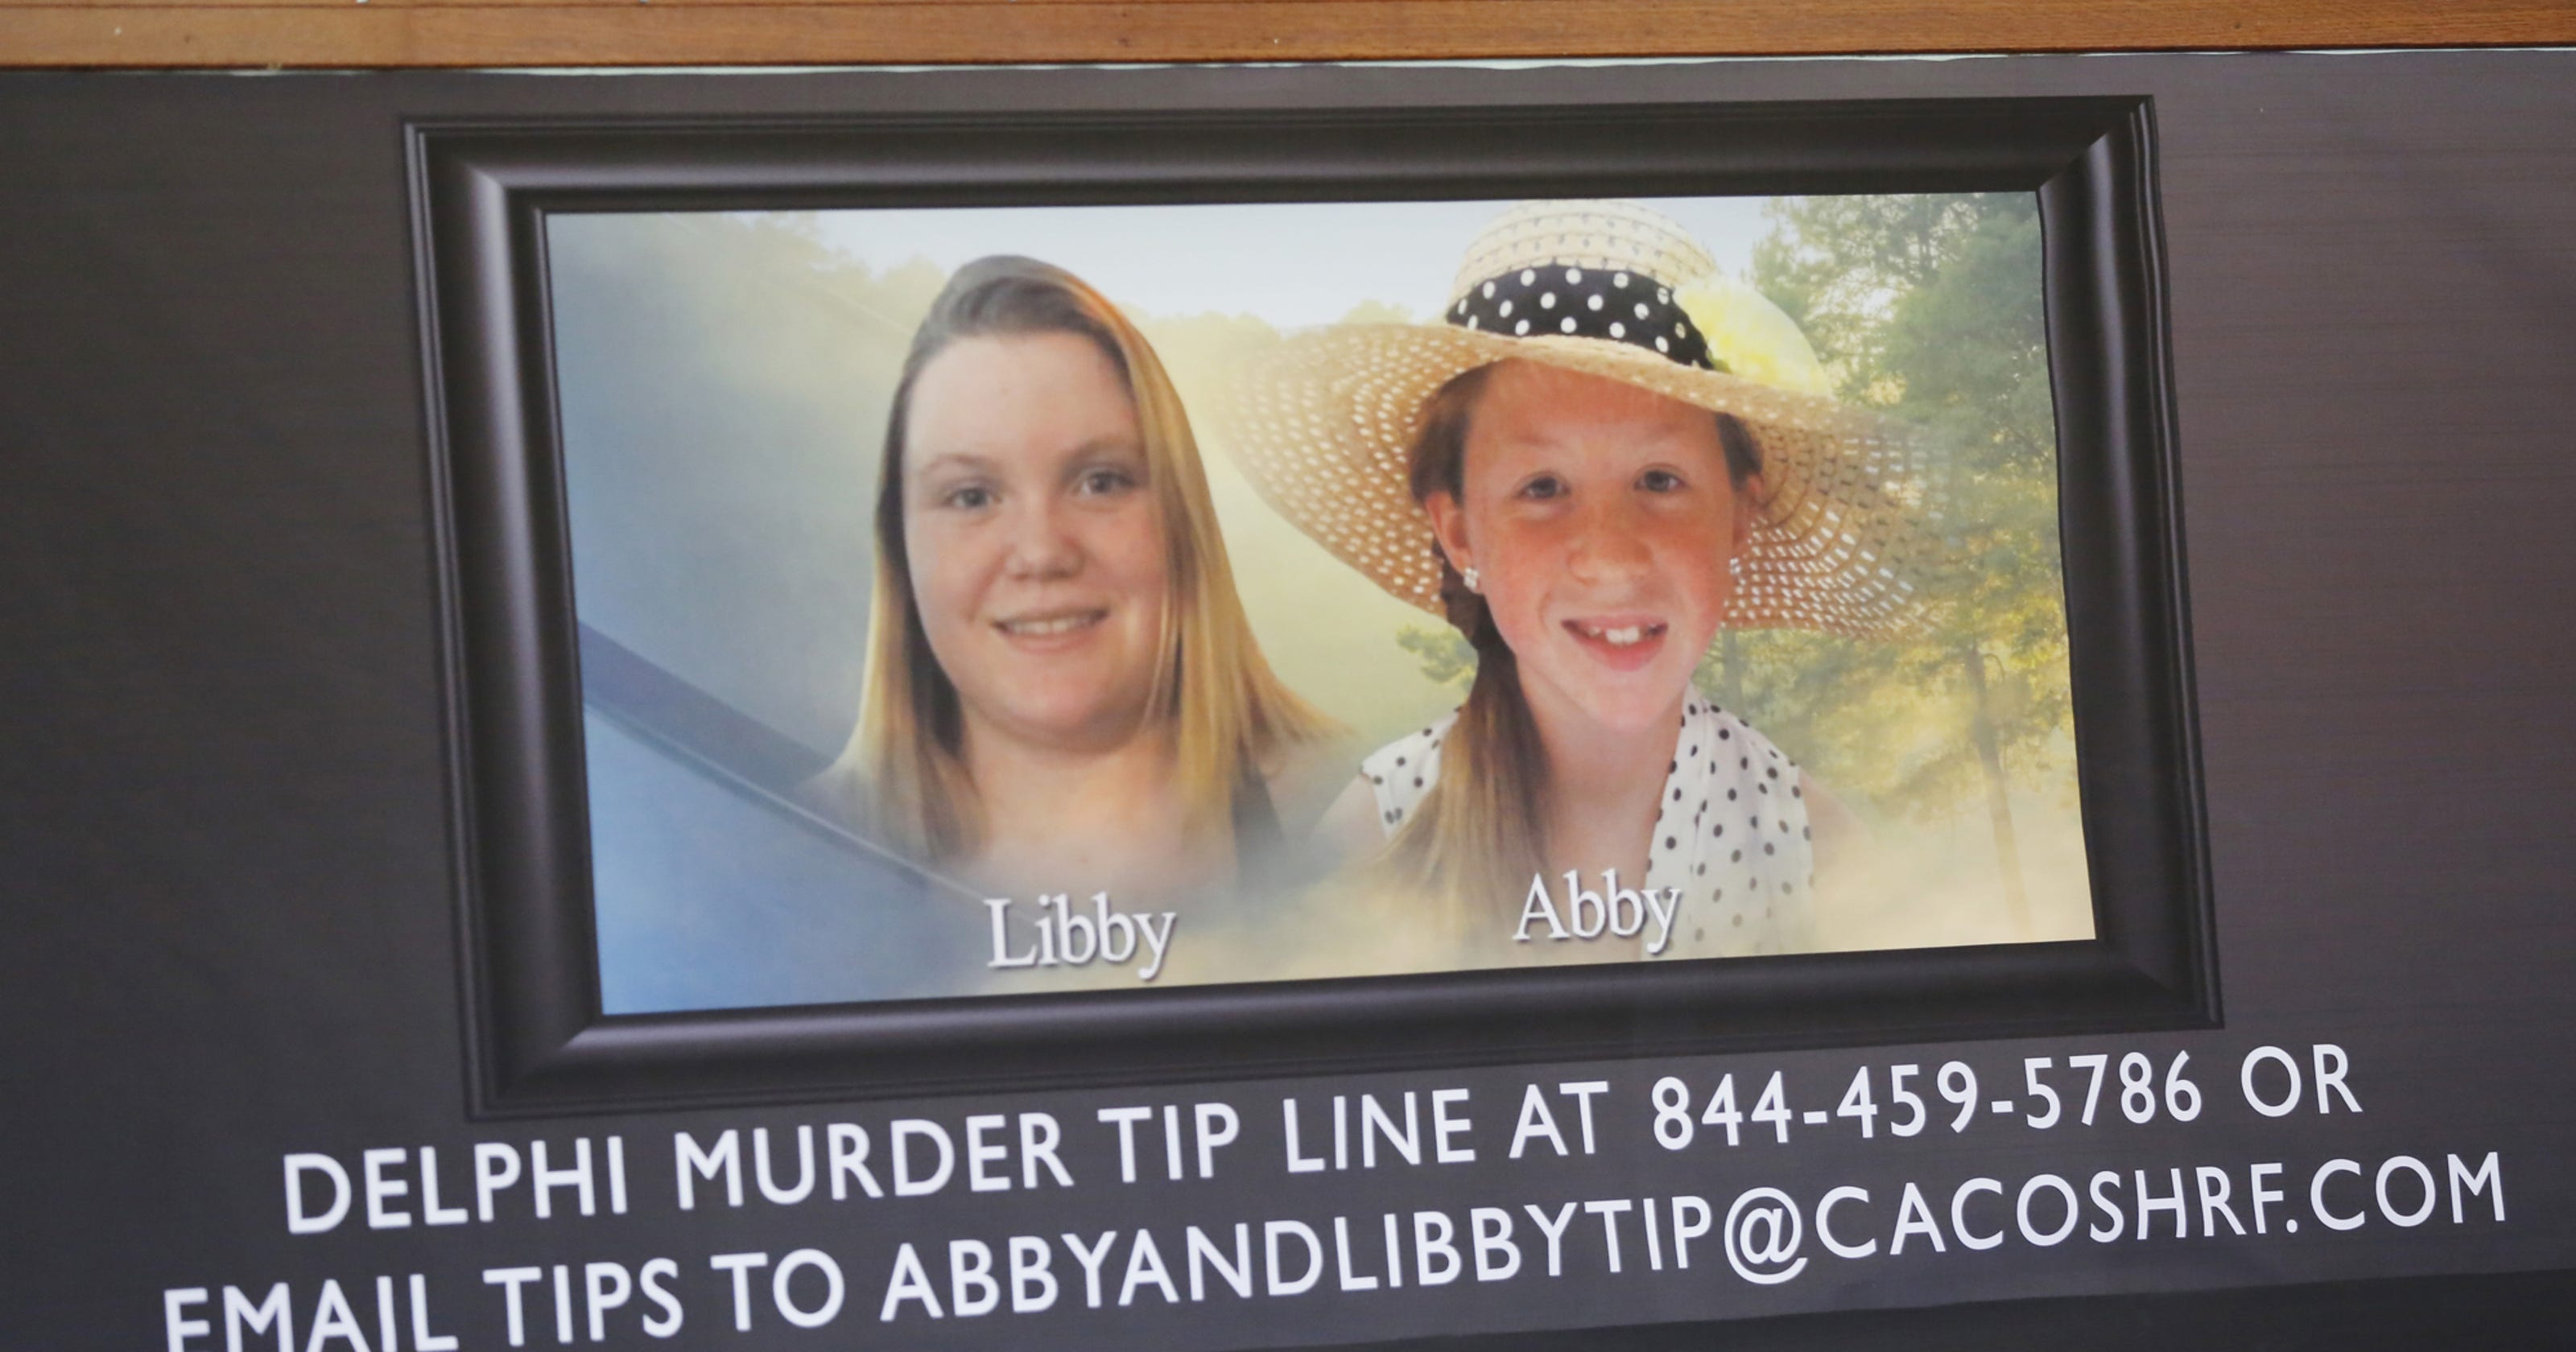 Delphi murders: Police to the killer: 'We're coming for you'